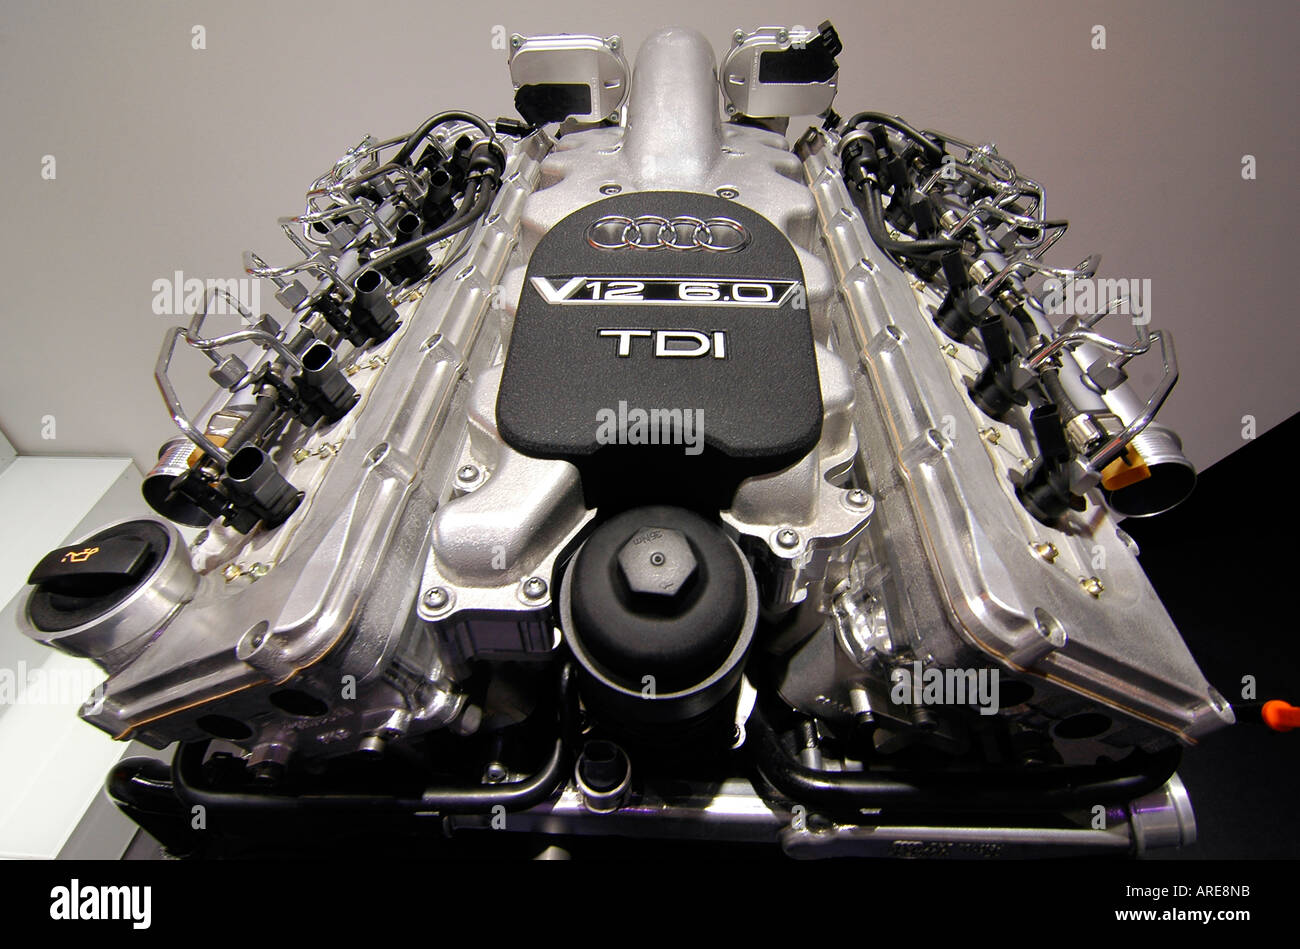 A state of the art V12 engine exhibited at the International Motor Show in Paris. - Stock Image